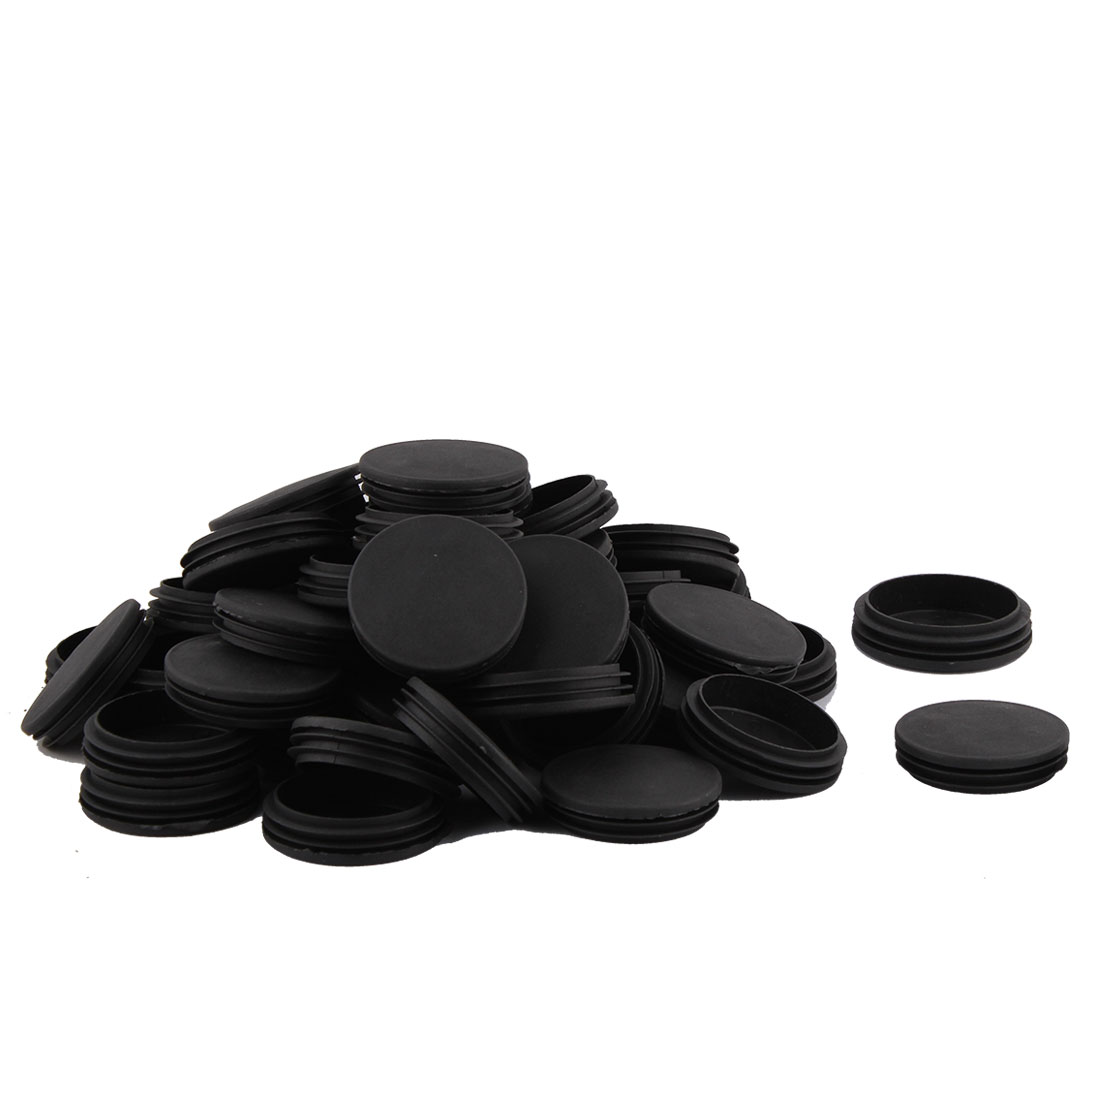 Home Plastic Round Table Cabinet Legs Protecter Tube Insert Black Dia 74mm 50 Pcs